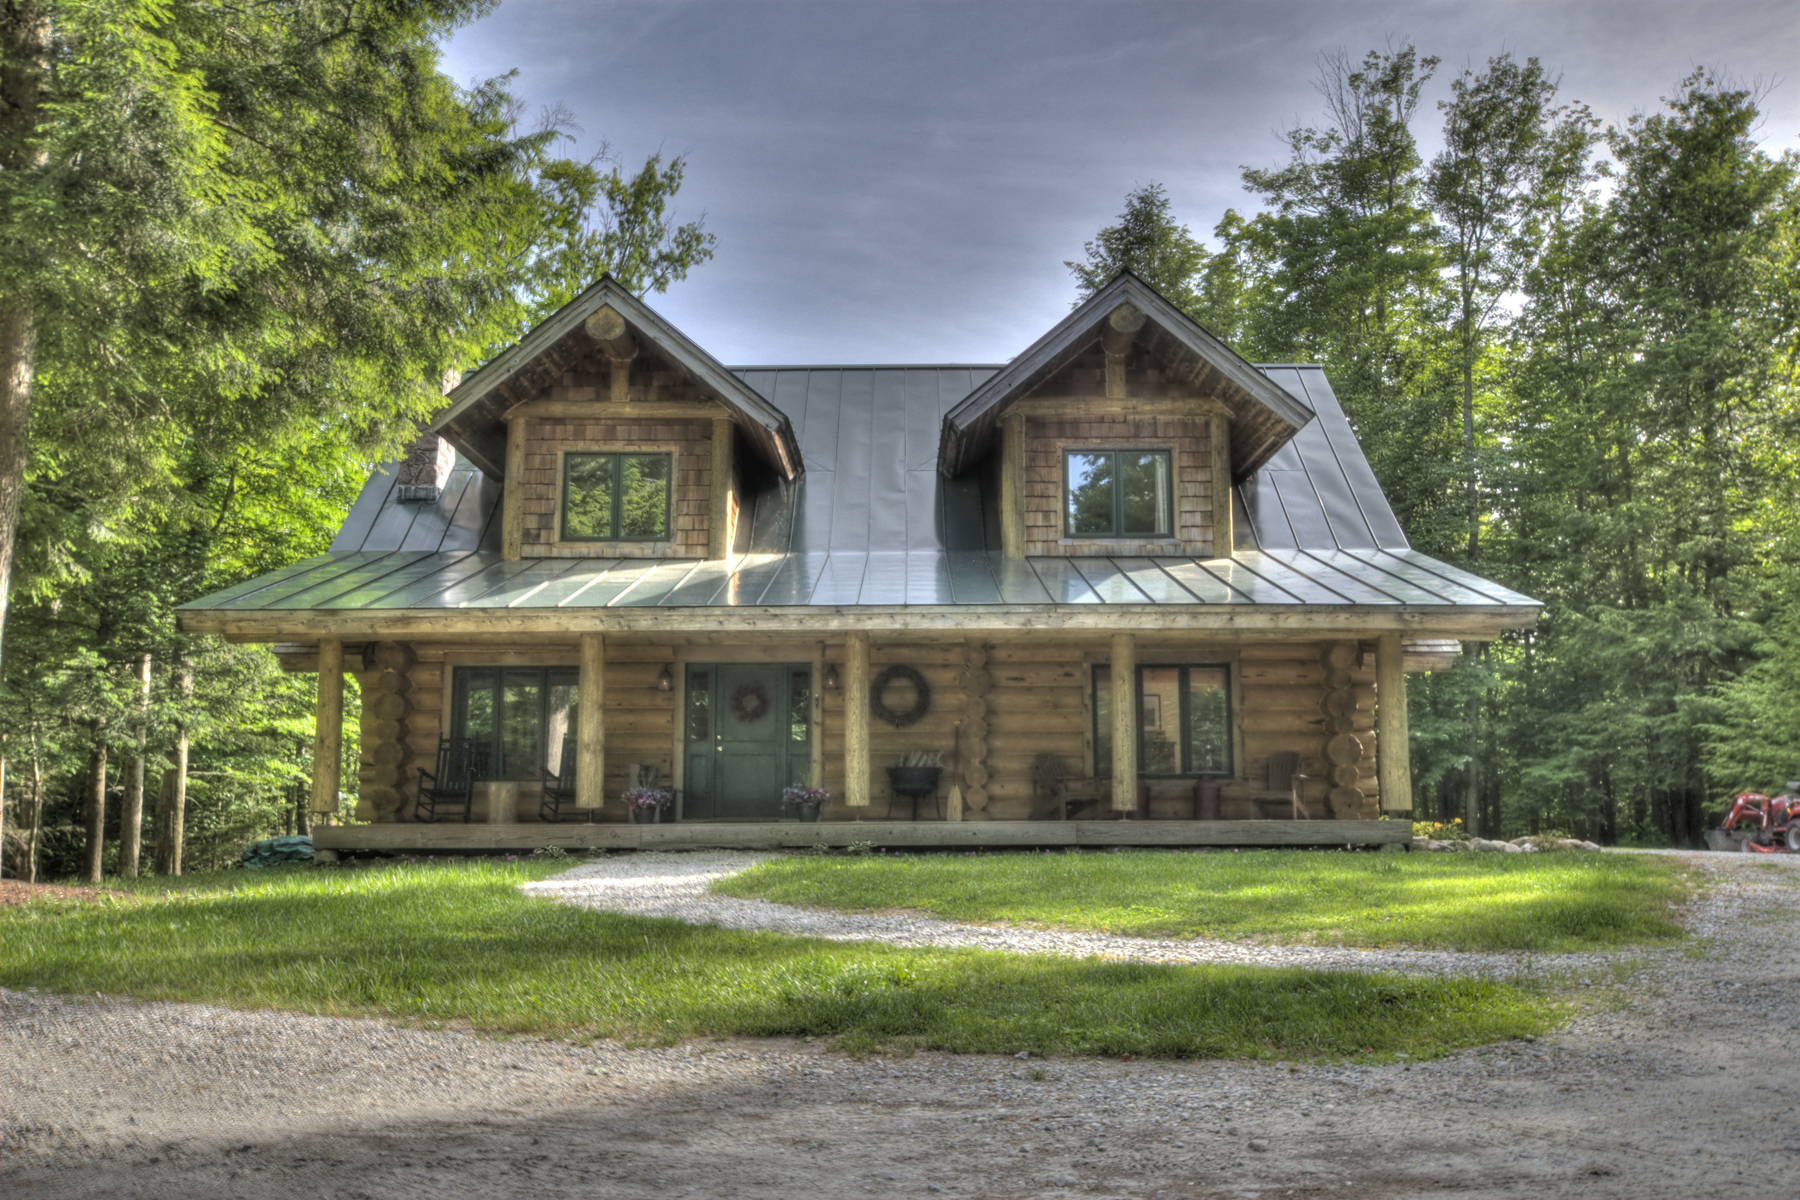 single family homes for Sale at Custom Built Log Home on 8+ Private Acres 7 Beebe Hill Rd Chittenden, Vermont 05737 United States